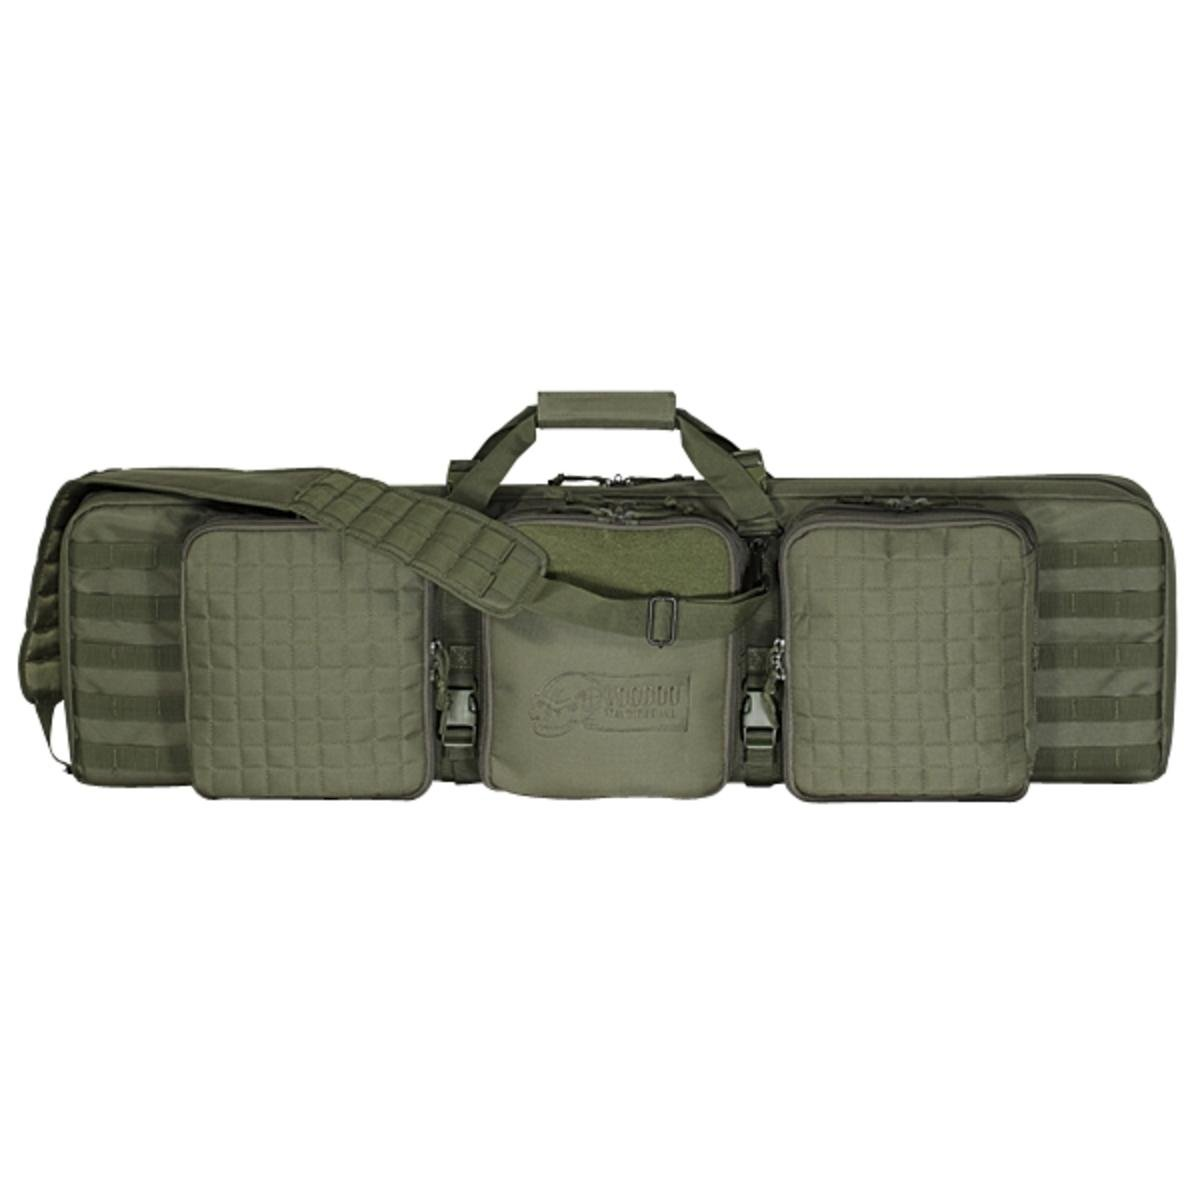 VooDoo Tactical 15-9648001000 Deluxe Padded Weapons Case, Black, 42 42